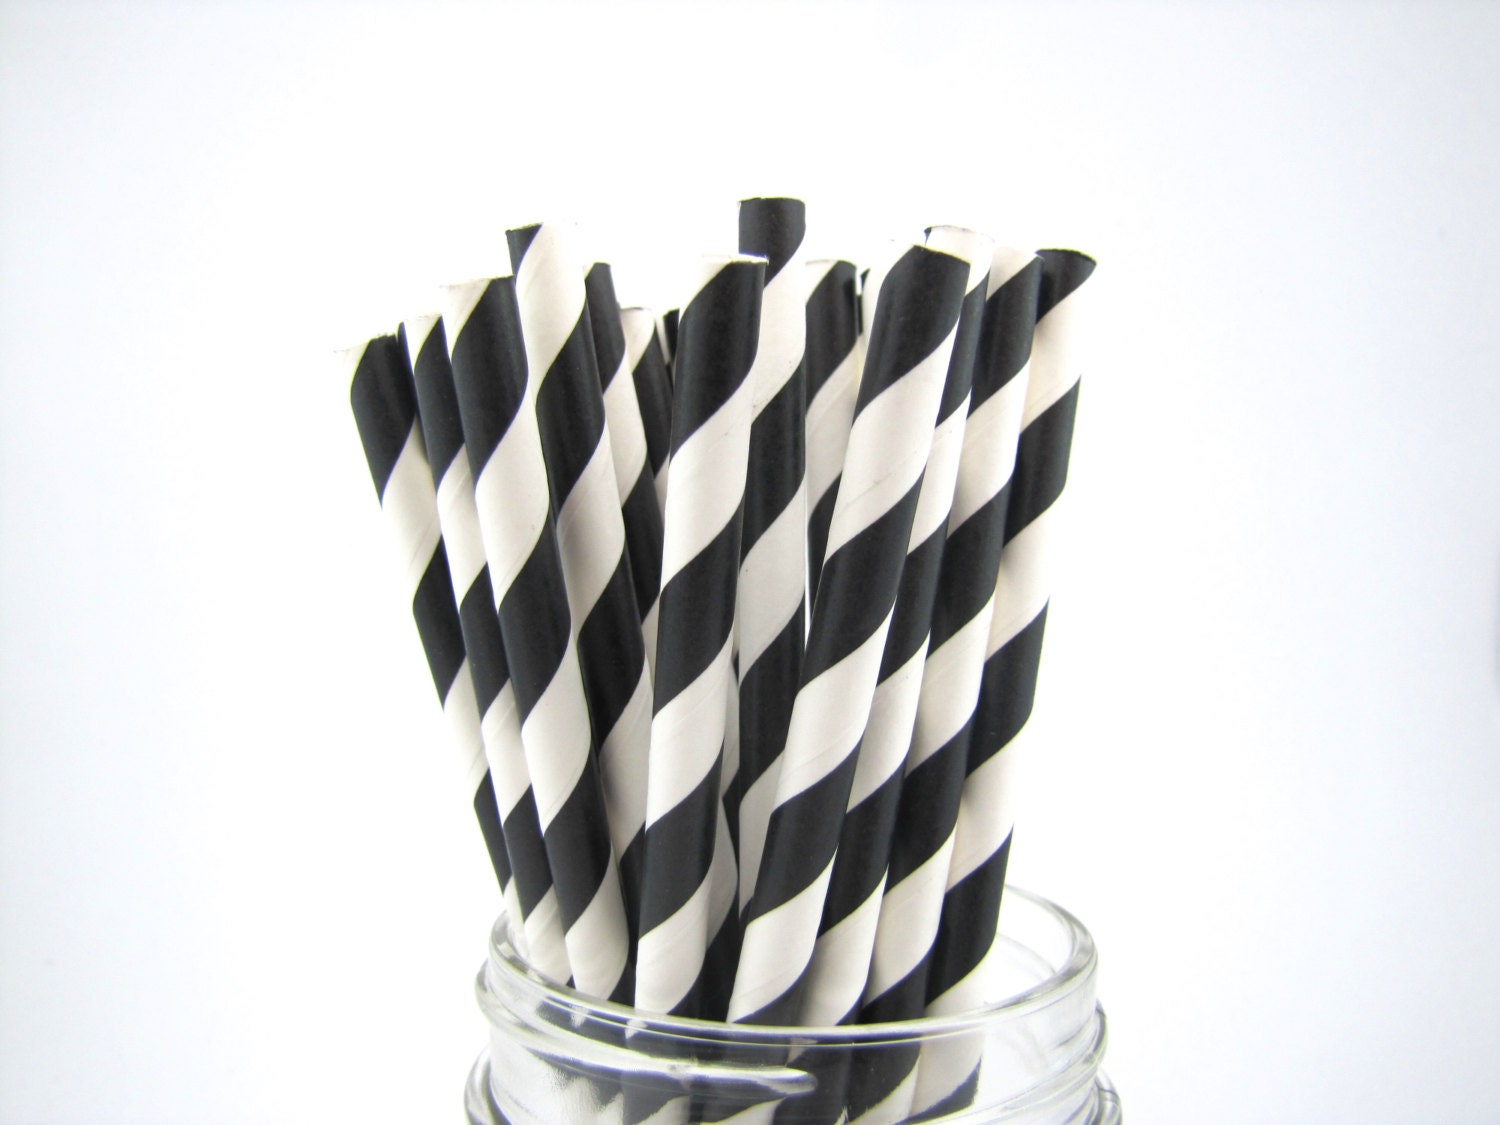 Different Color Licorice Trend Home Design And Decor